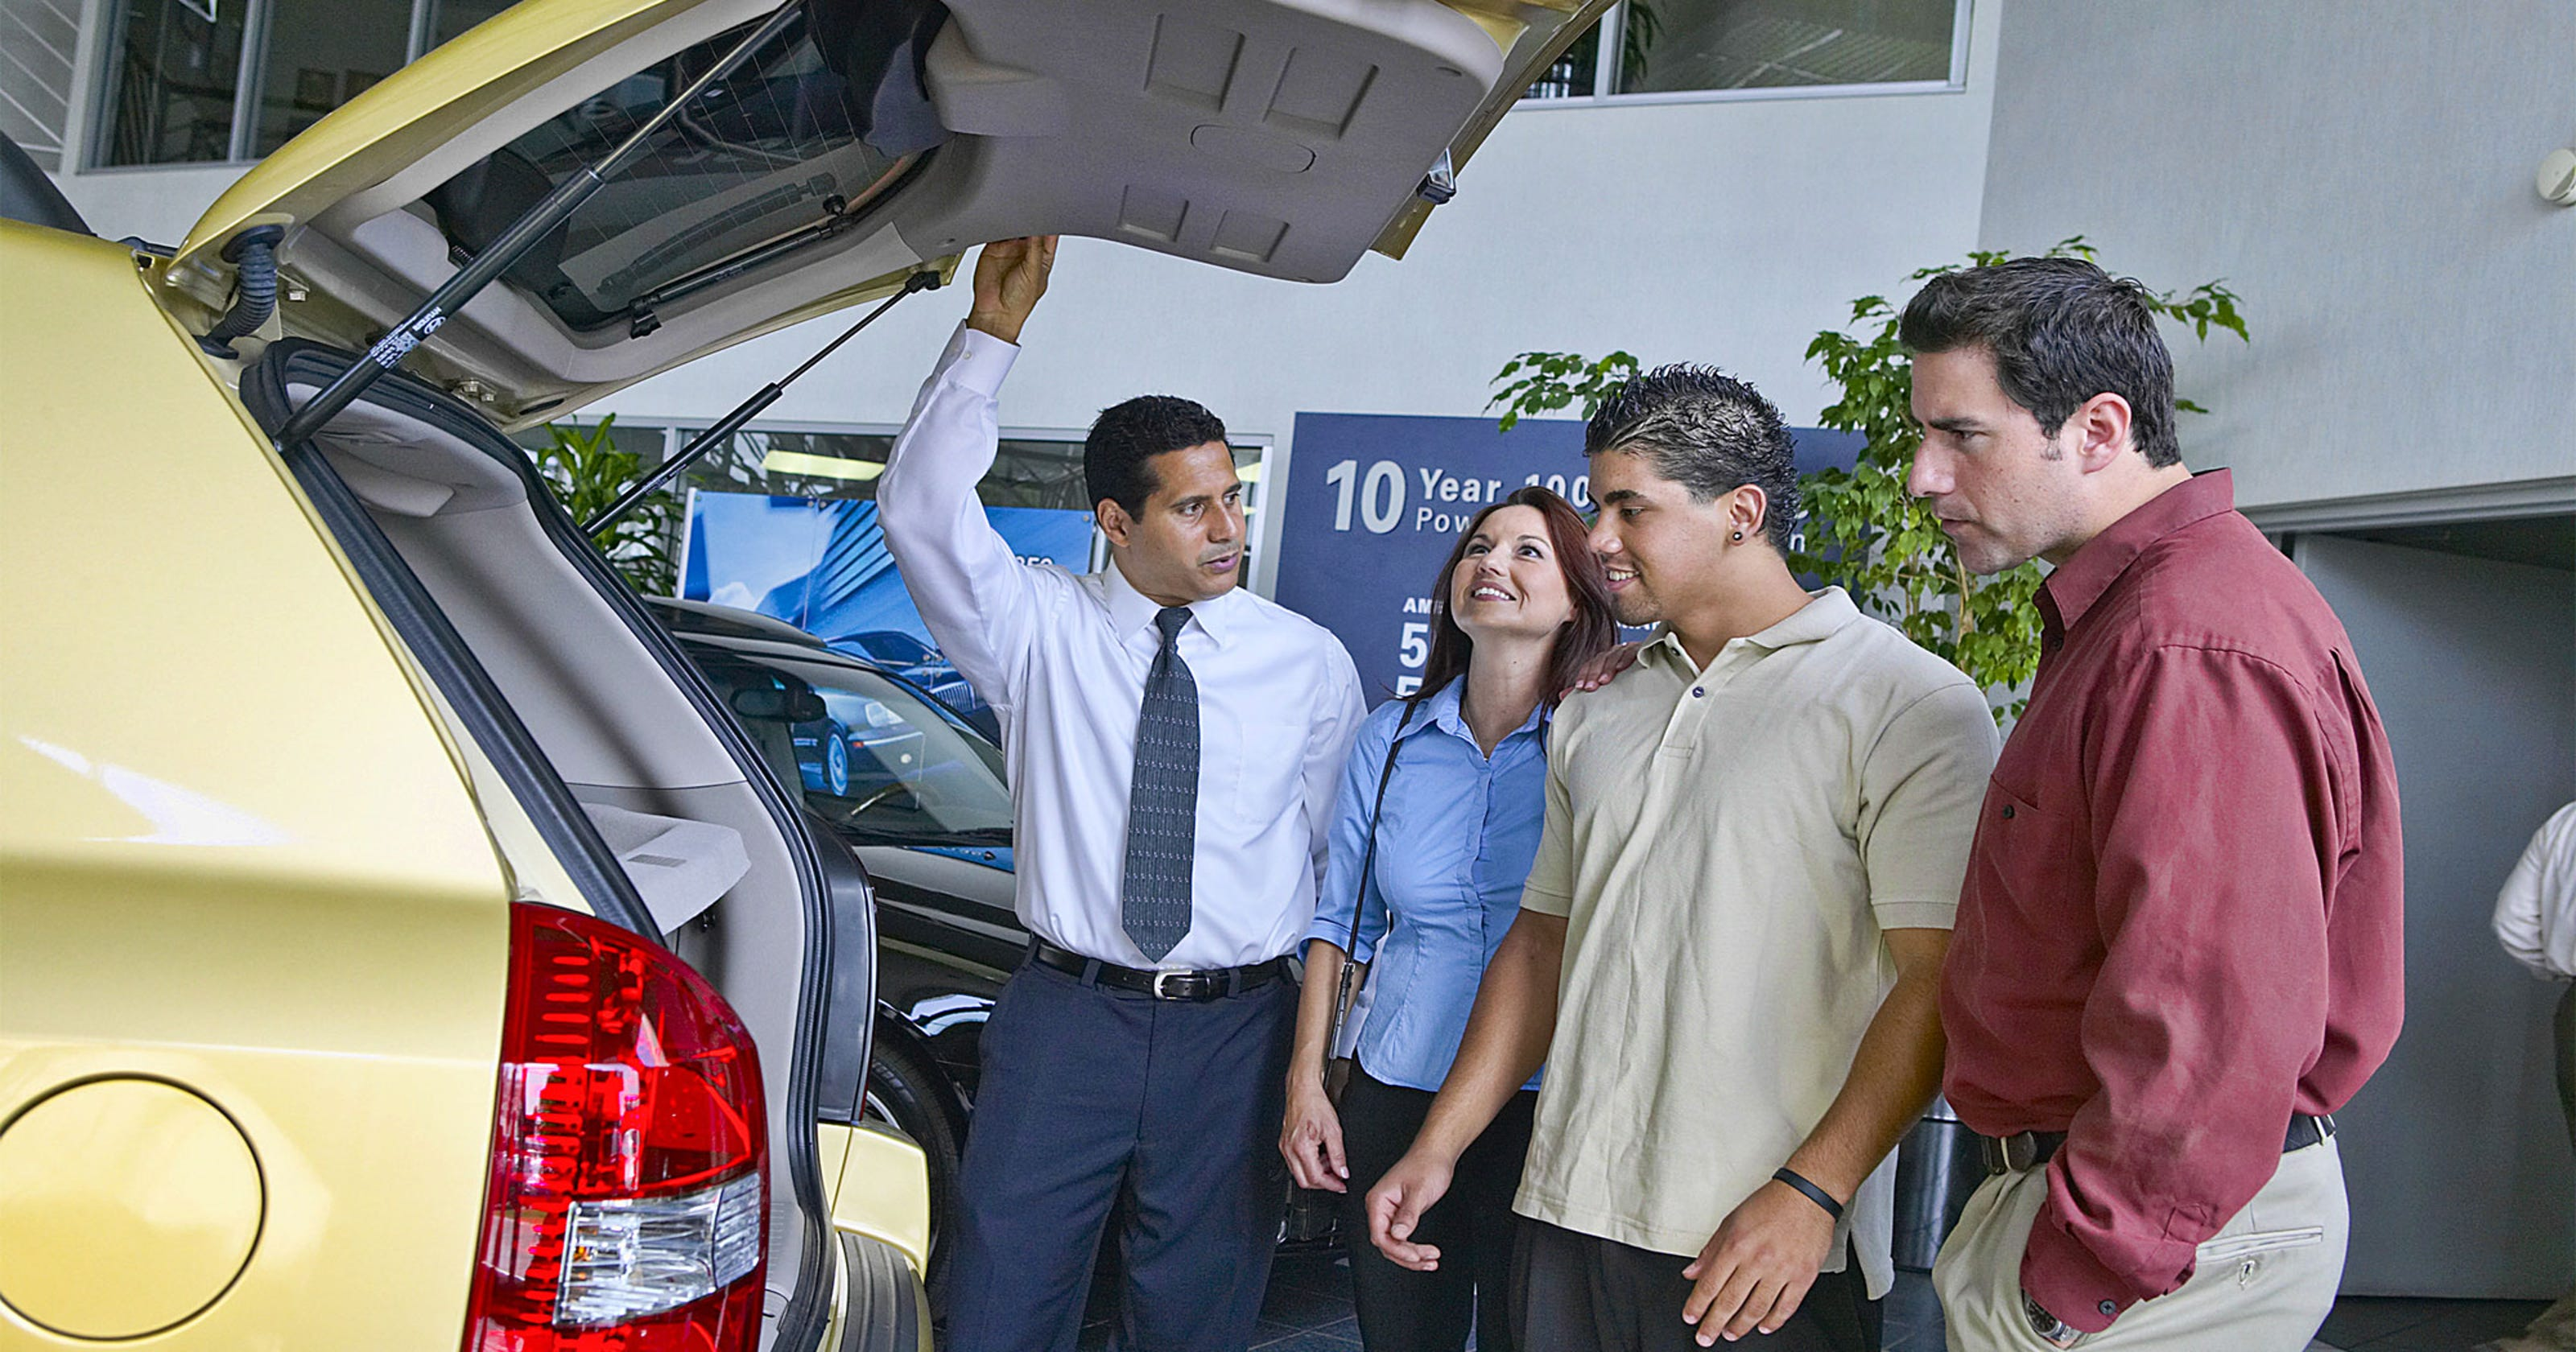 ally auto loan rates today